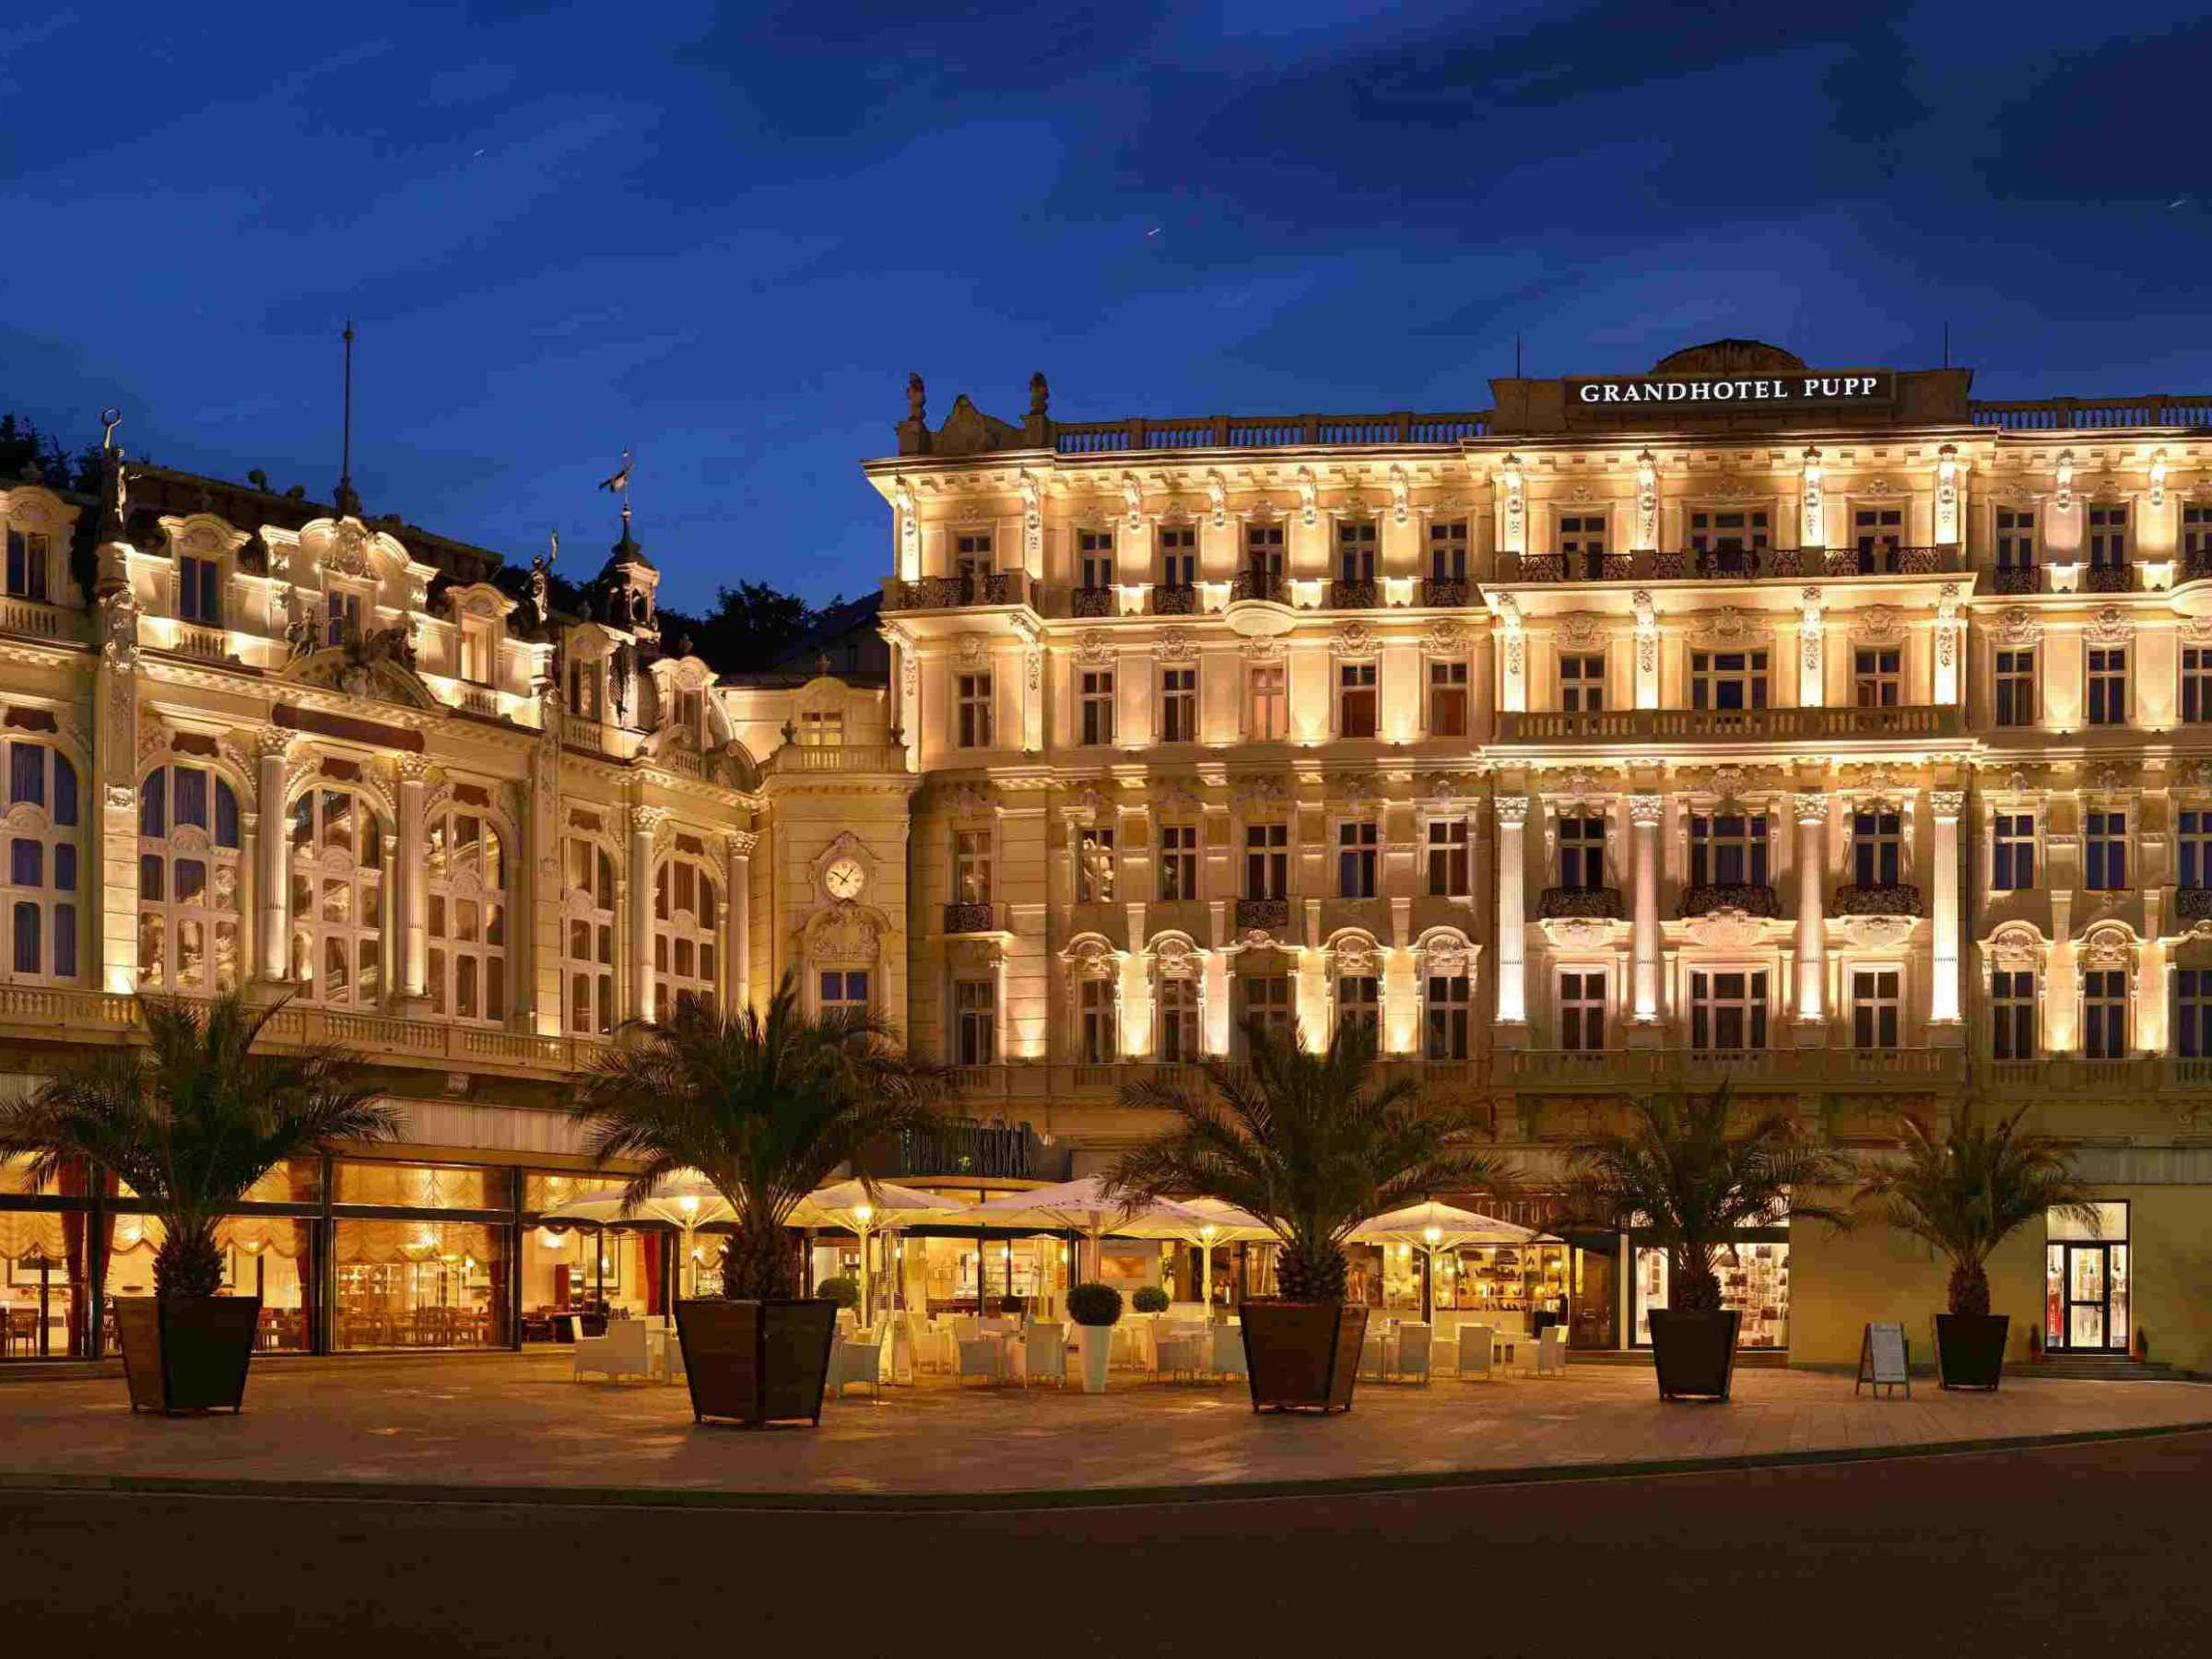 The Grandhotel Pupp Located In The Heart Of Karlovy Vary Just 80 Miles West Of Prague This Spa City Has Remedial Springs Rich Histor Tsjechië Hotel Kastelen